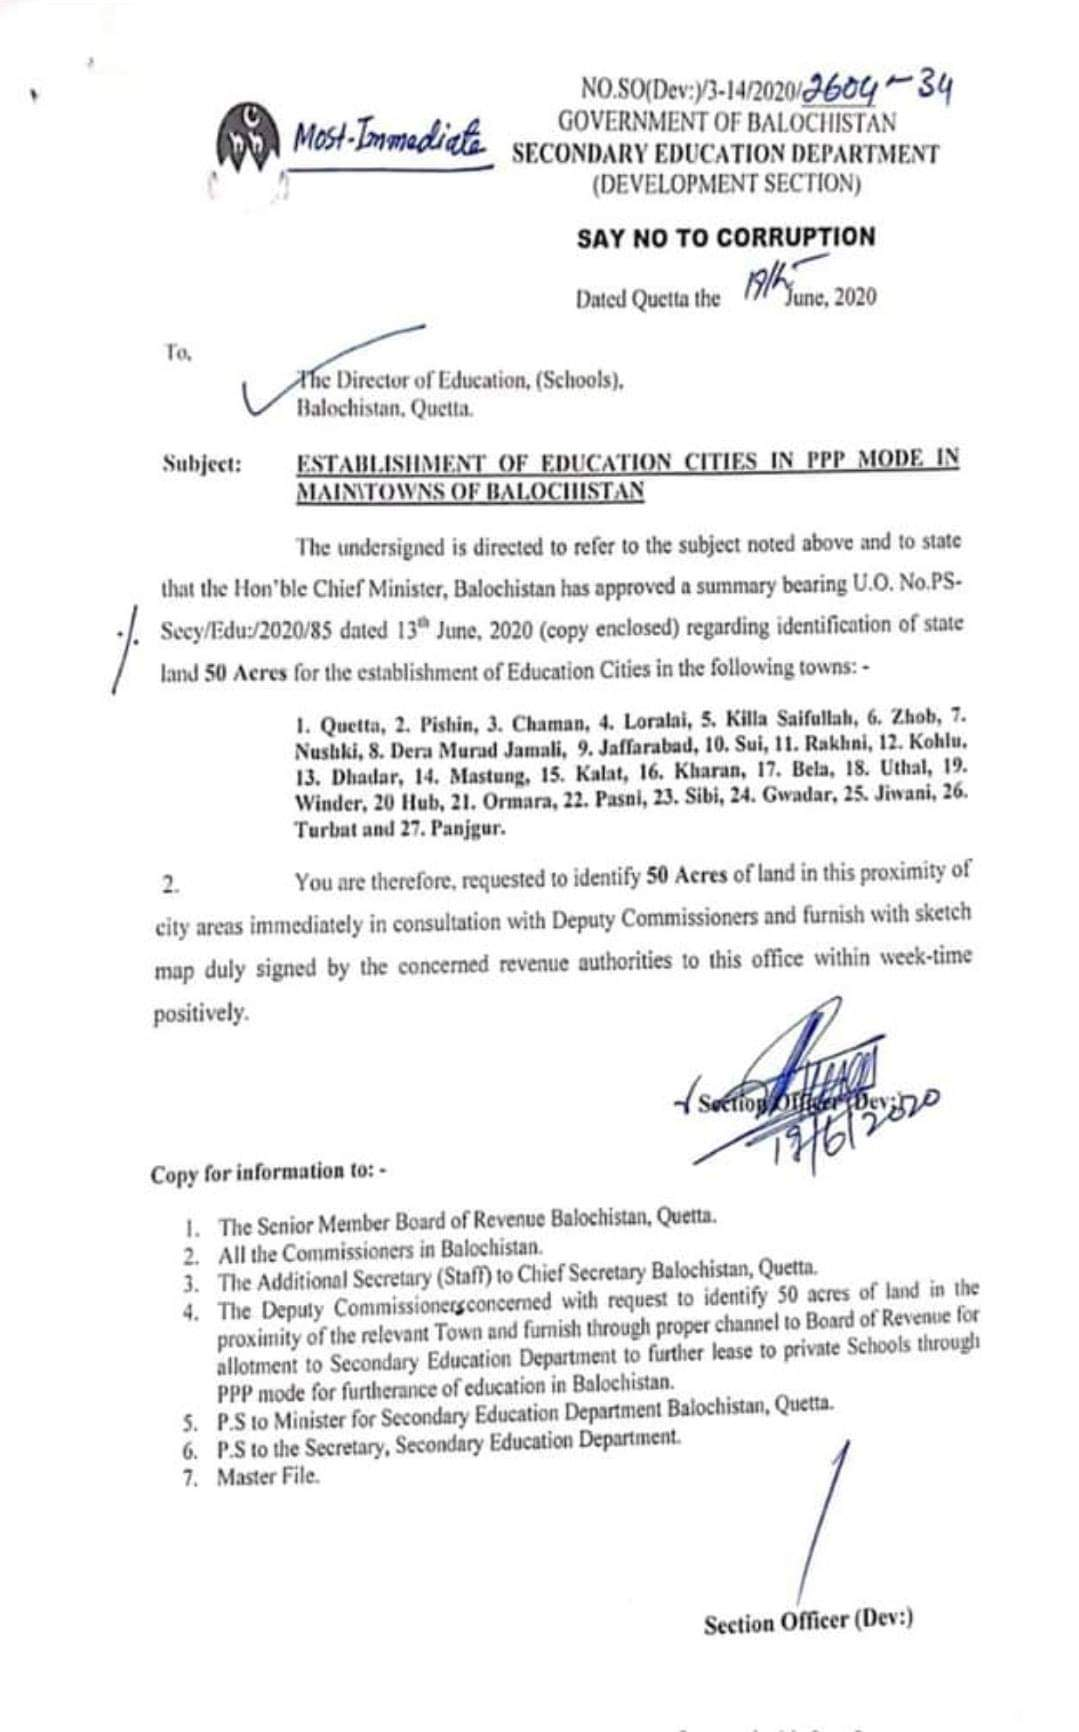 Establishment of Education Cities in PPP Mode in Main Towns of Balochistan | Government of Balochistan Secondary Education Department (Development Section) | June 19, 2020 - allpaknotifications.com